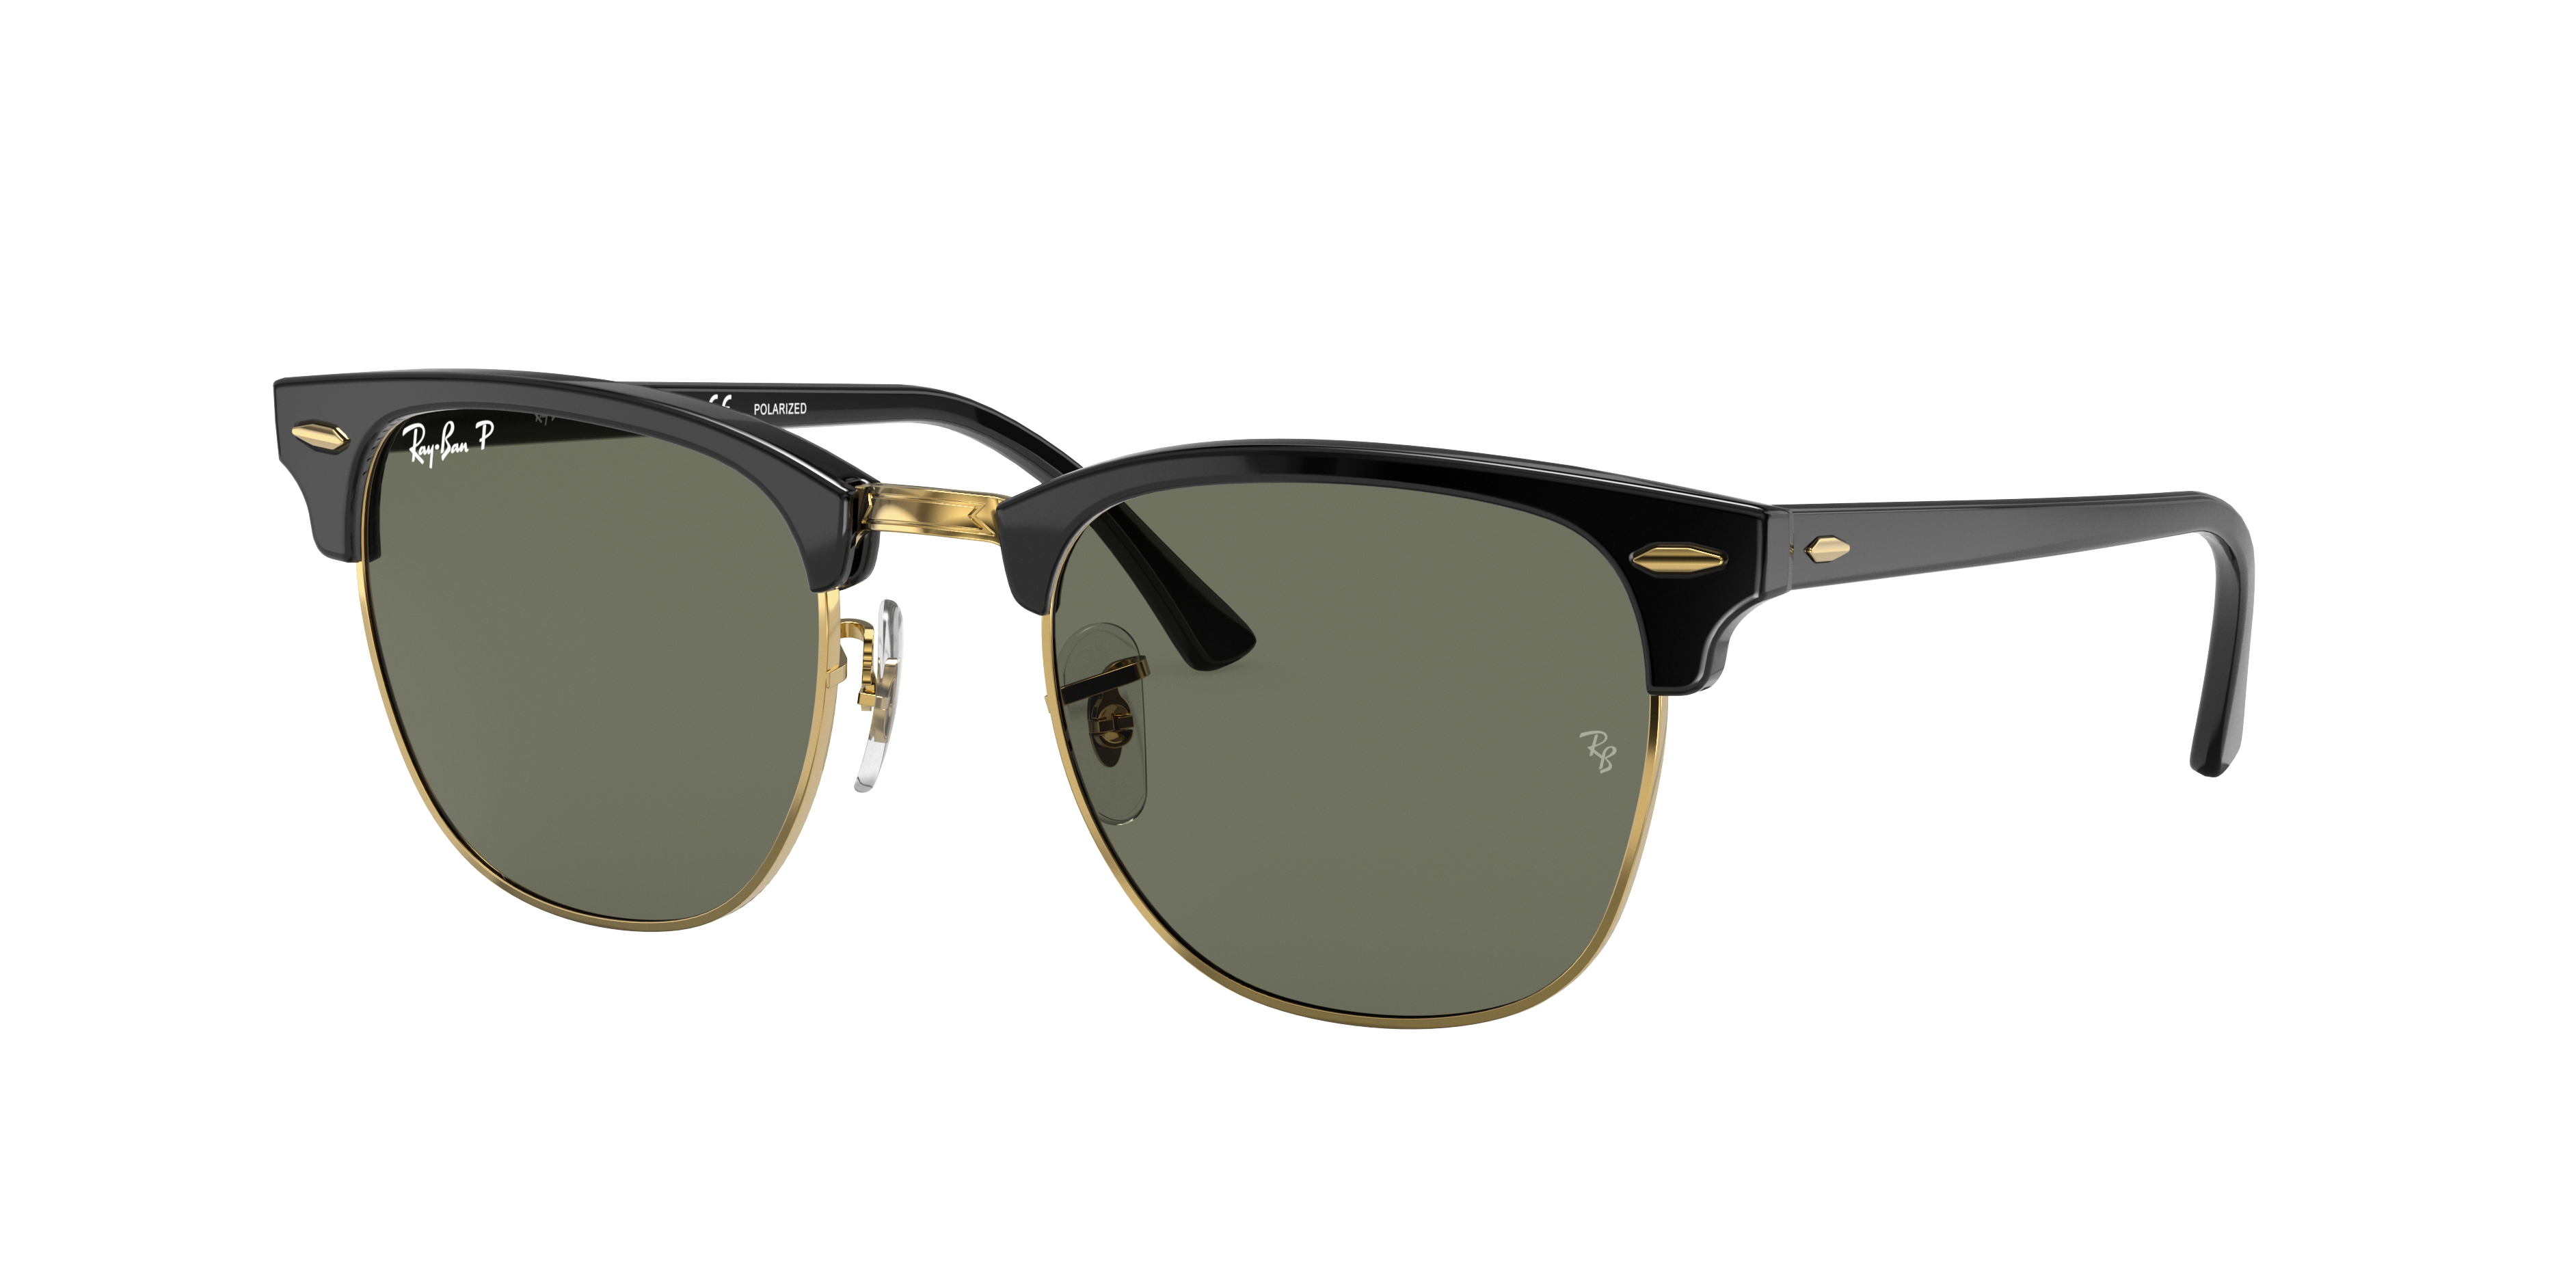 Ray-Ban Clubmaster Classic Black, Polarized Green Lenses - RB3016